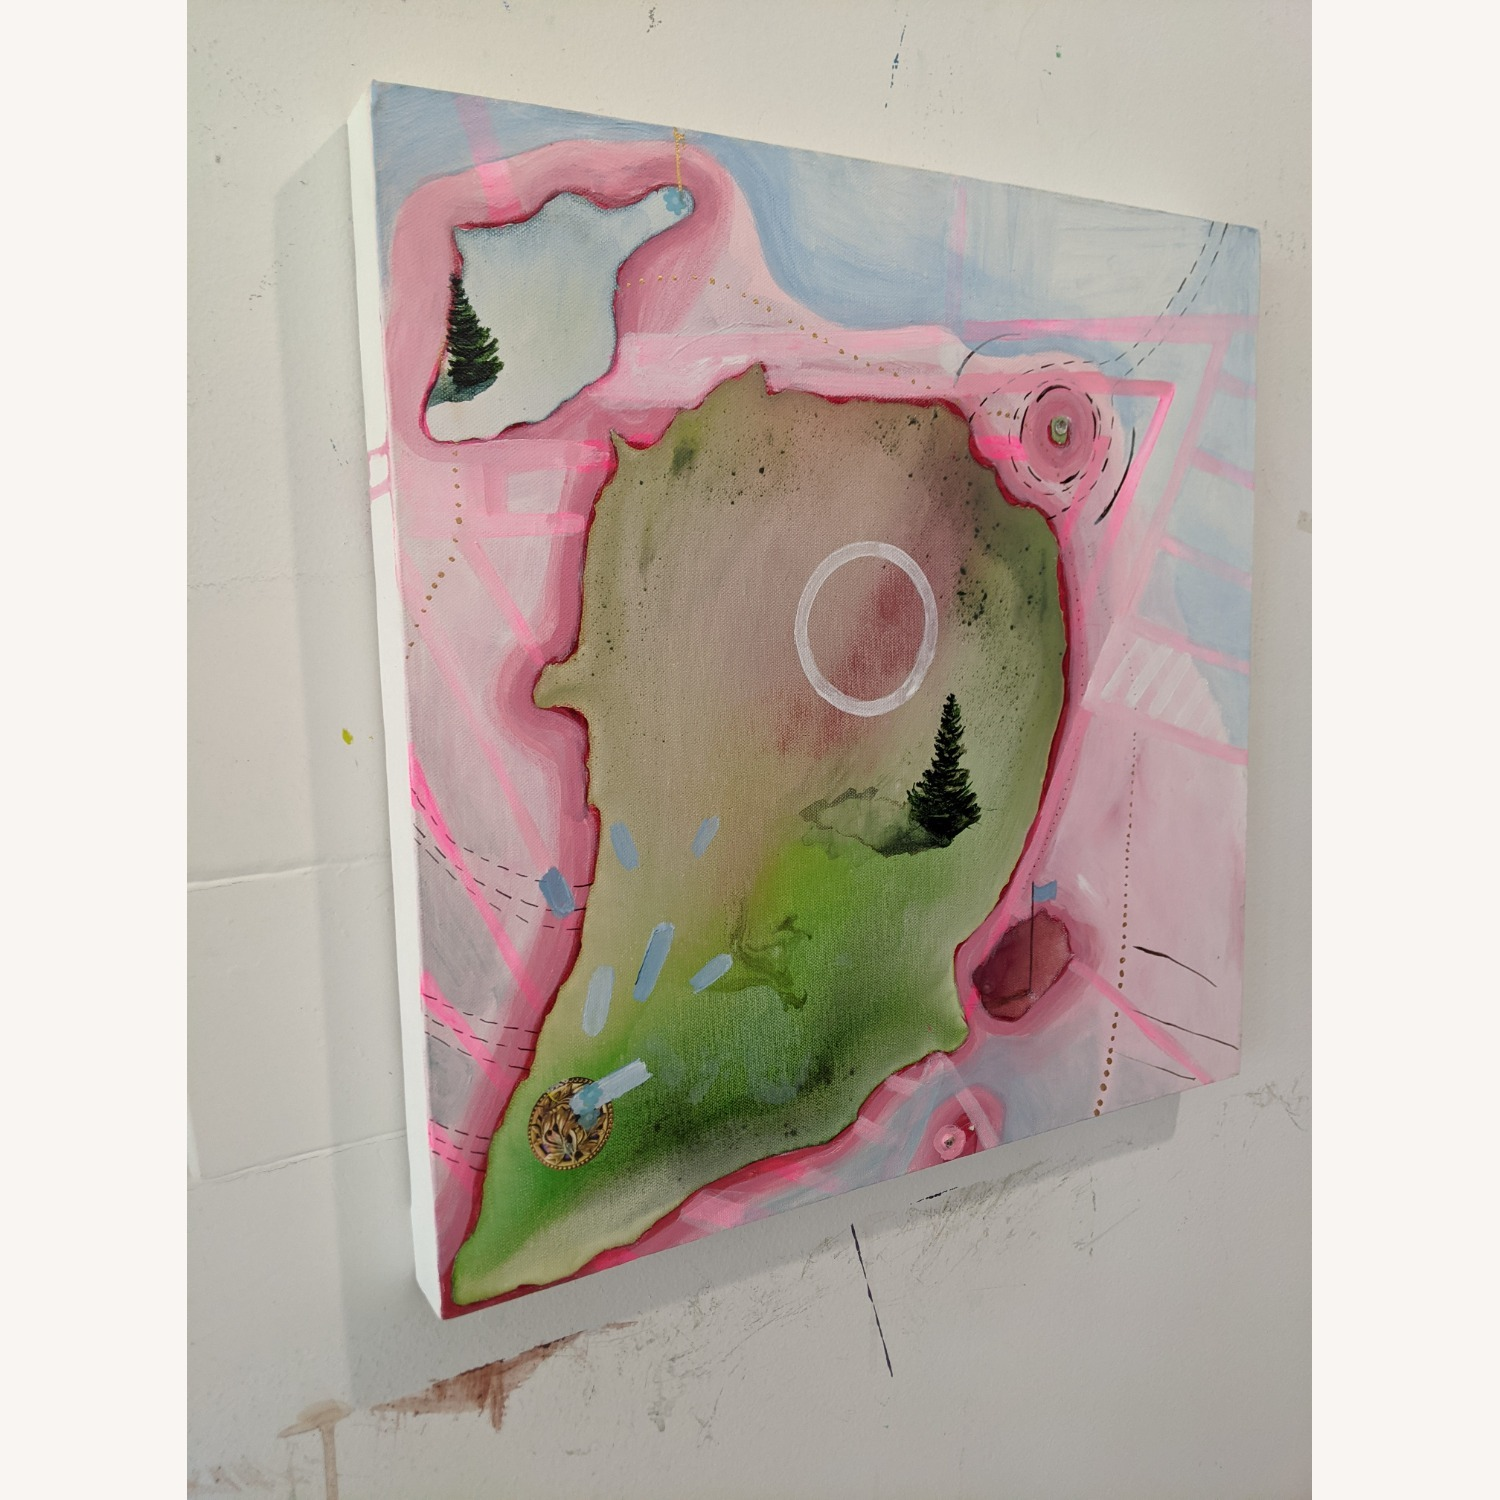 Bright Pink Painting - image-2